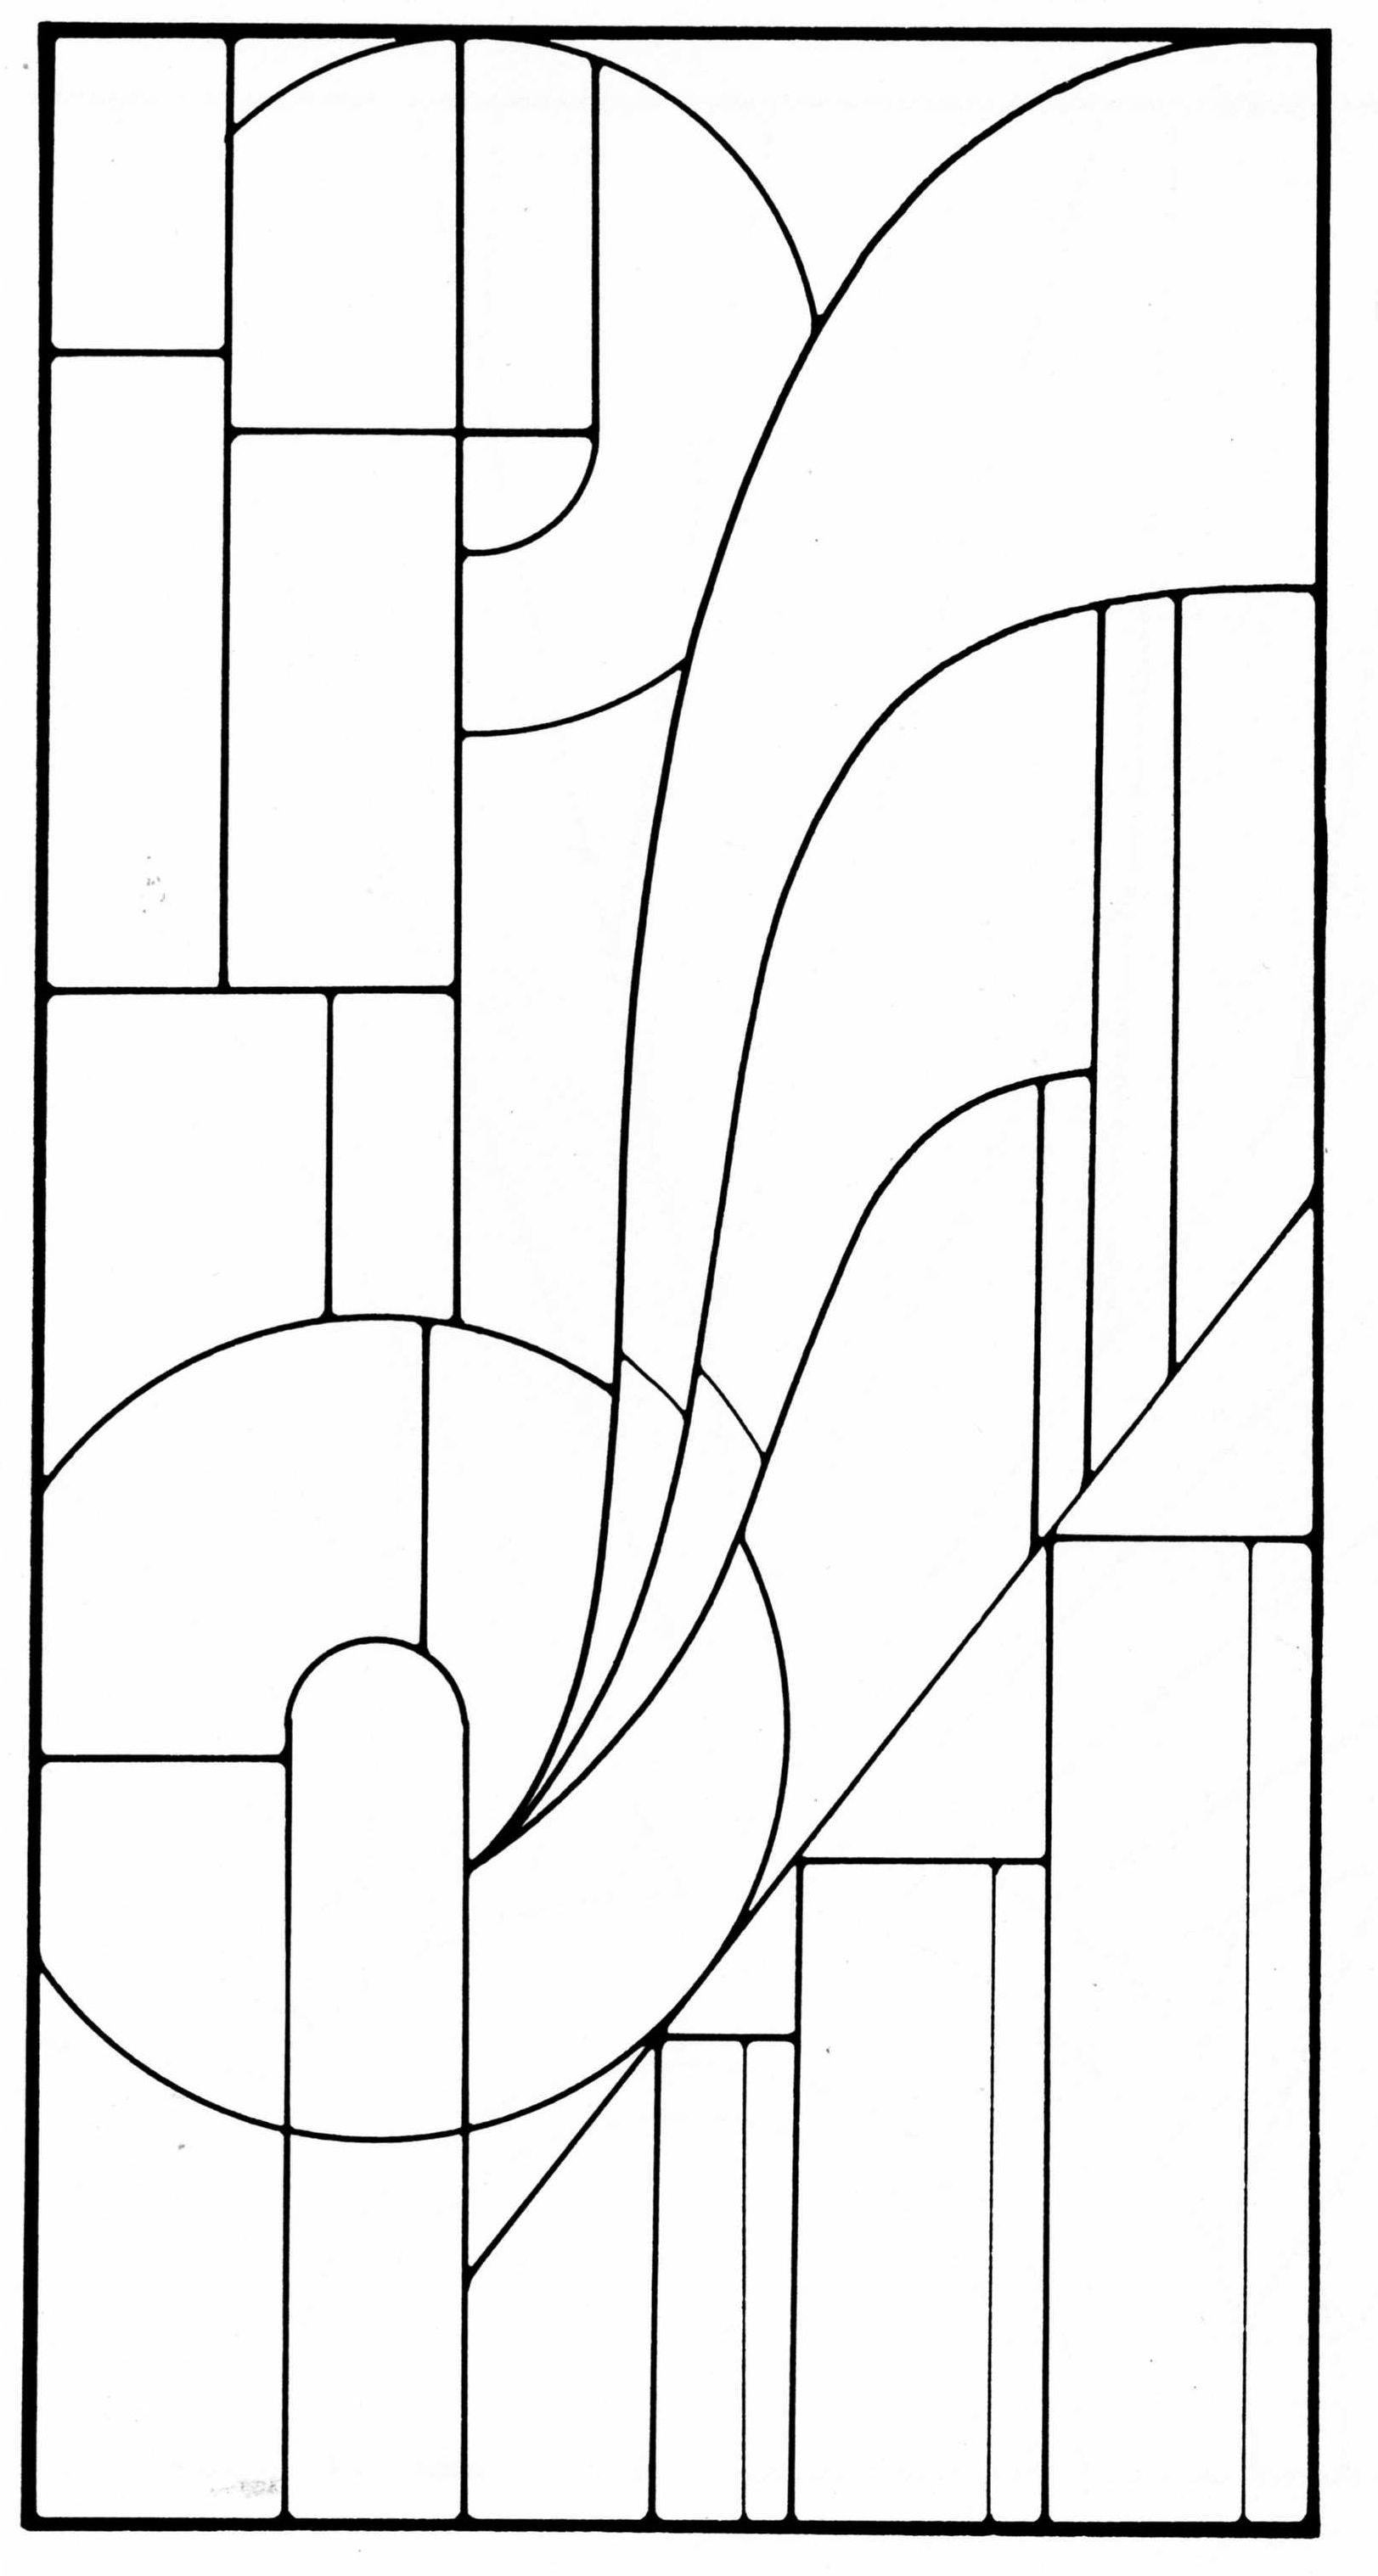 Art Deco Stained Glass Designs, Dover Publications When I